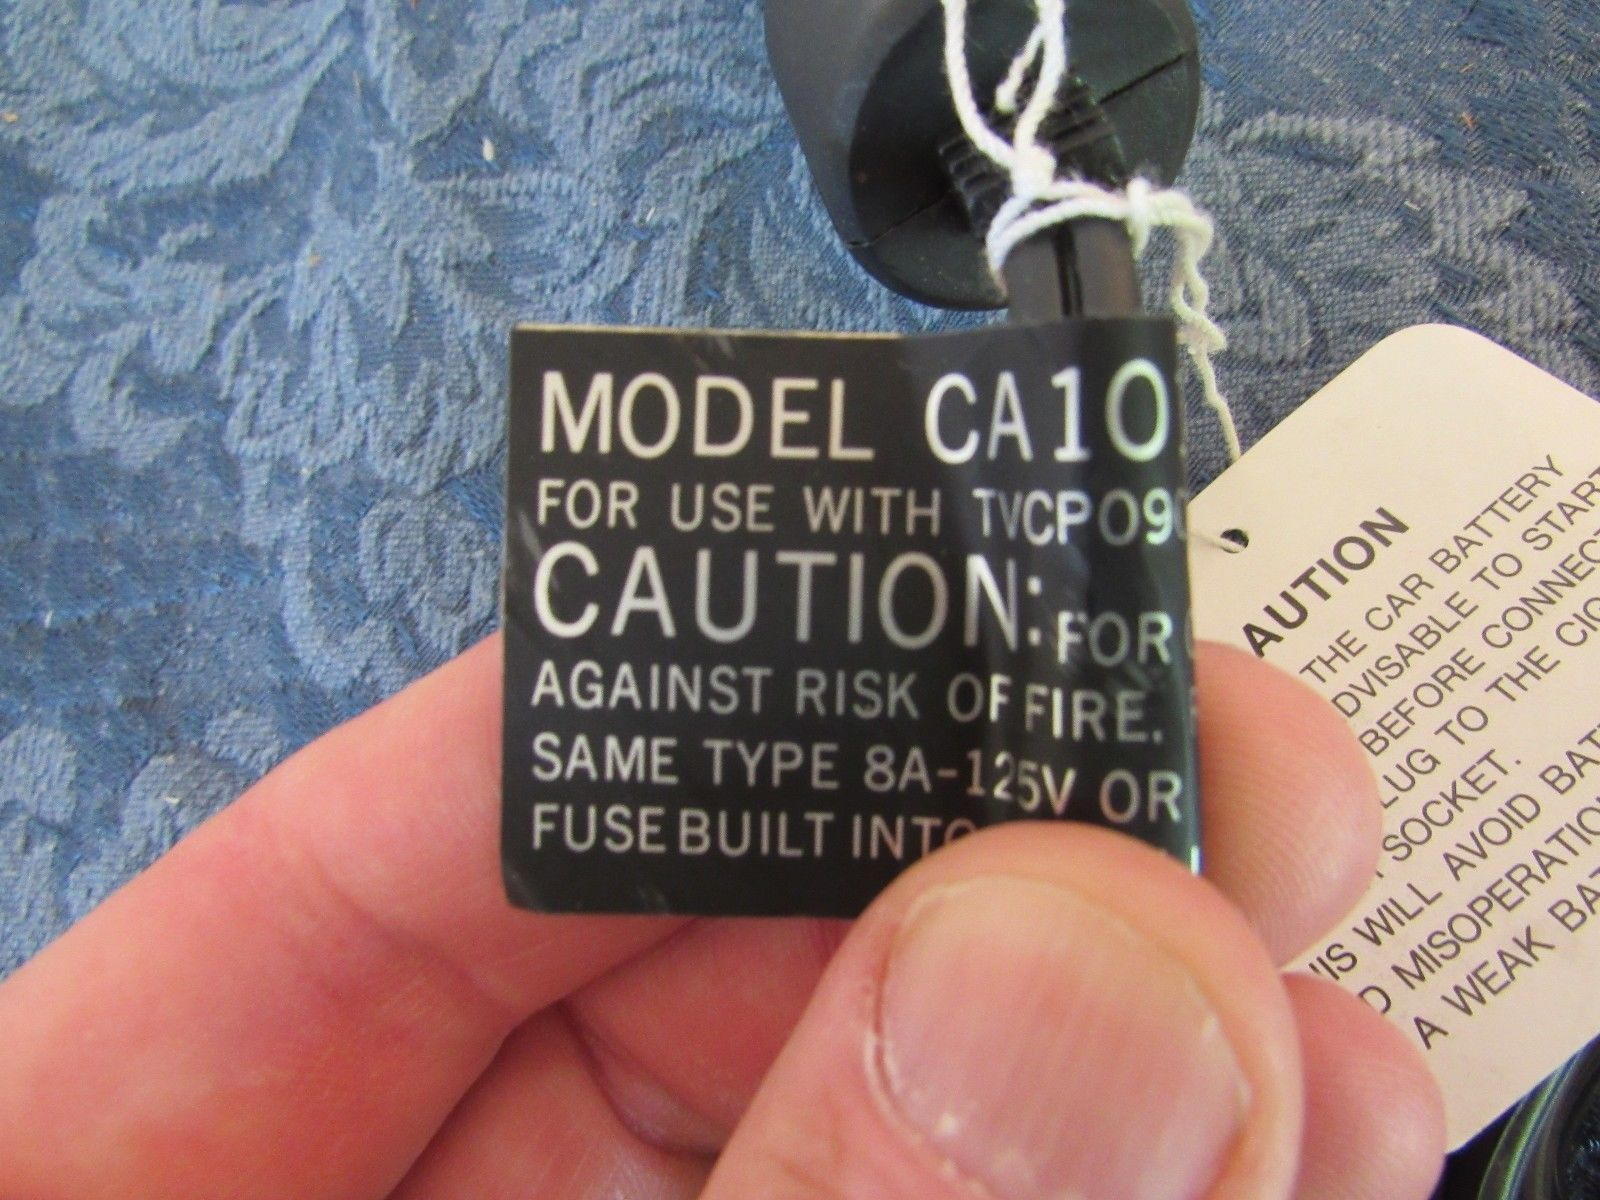 OEM Orion Auto Power Cord For TVCP0900   Model CA101